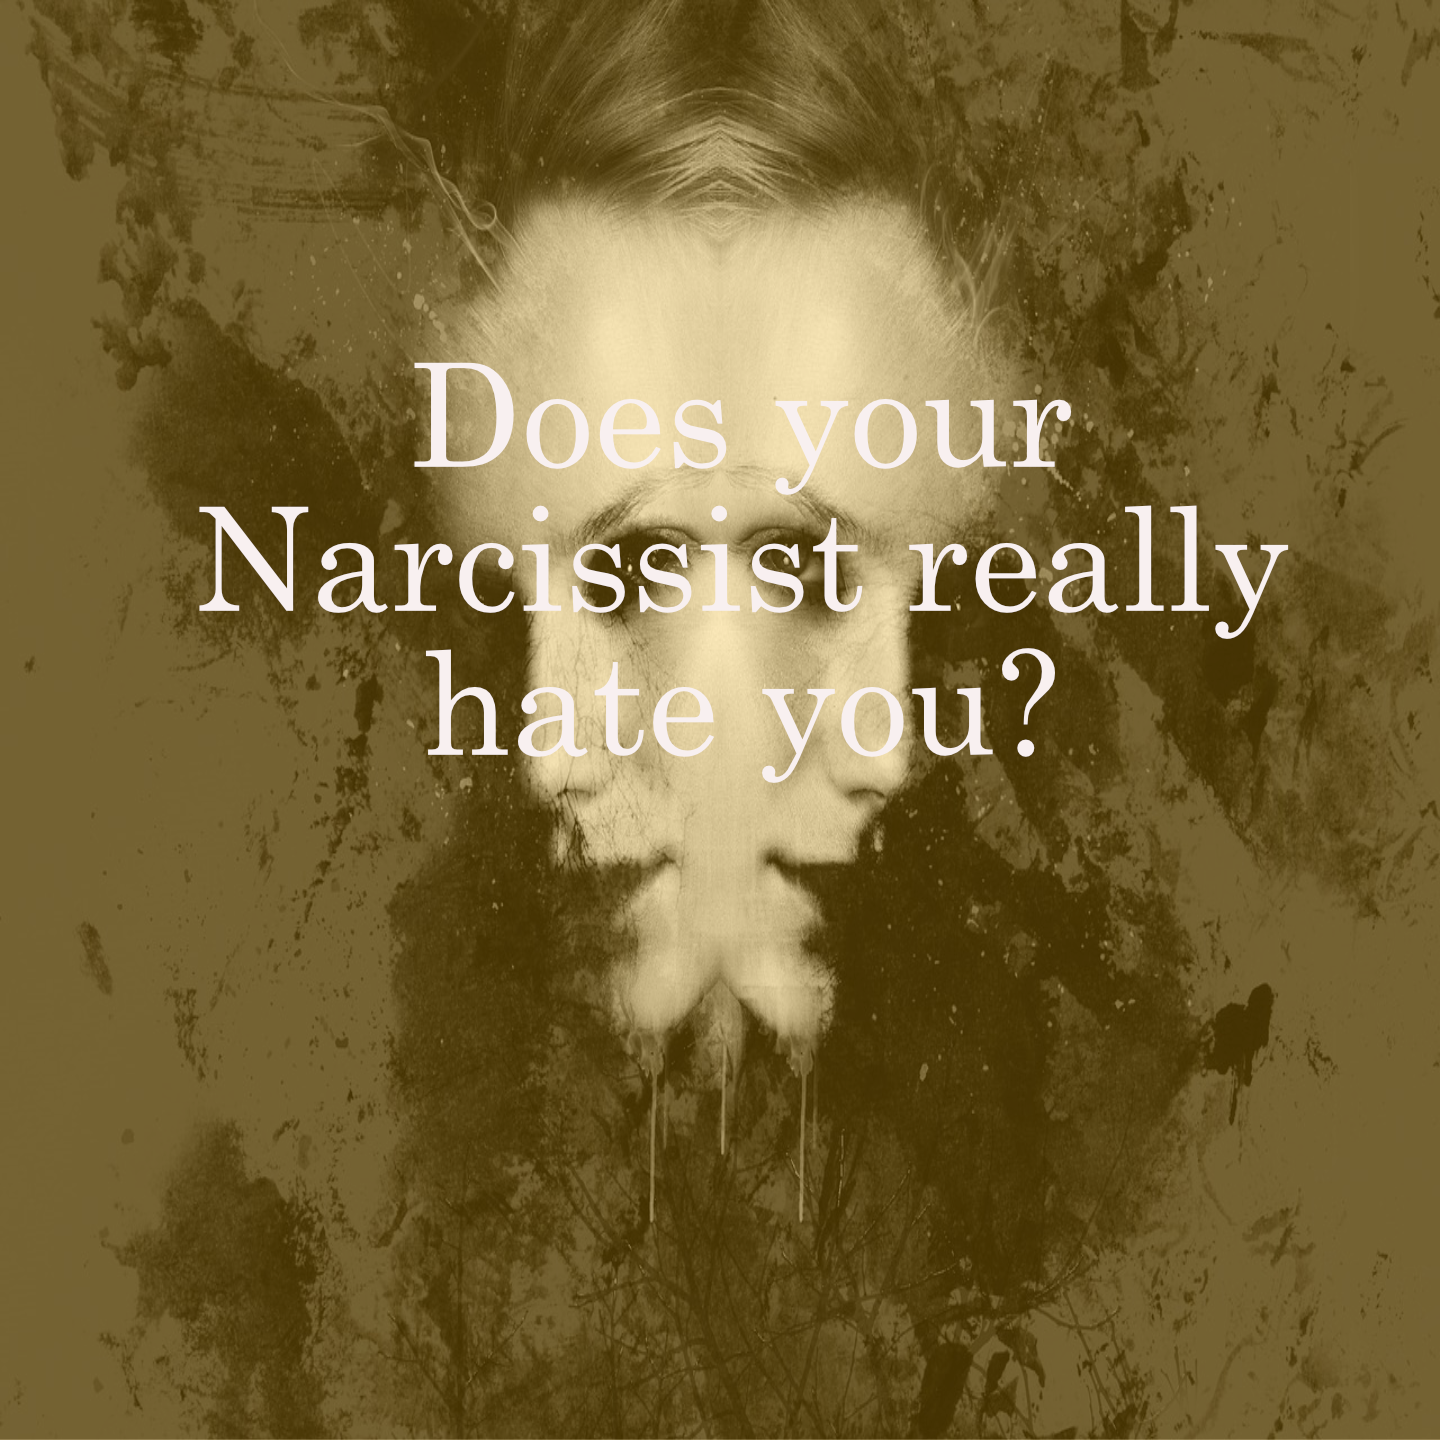 Does your Narcissist really hate you?